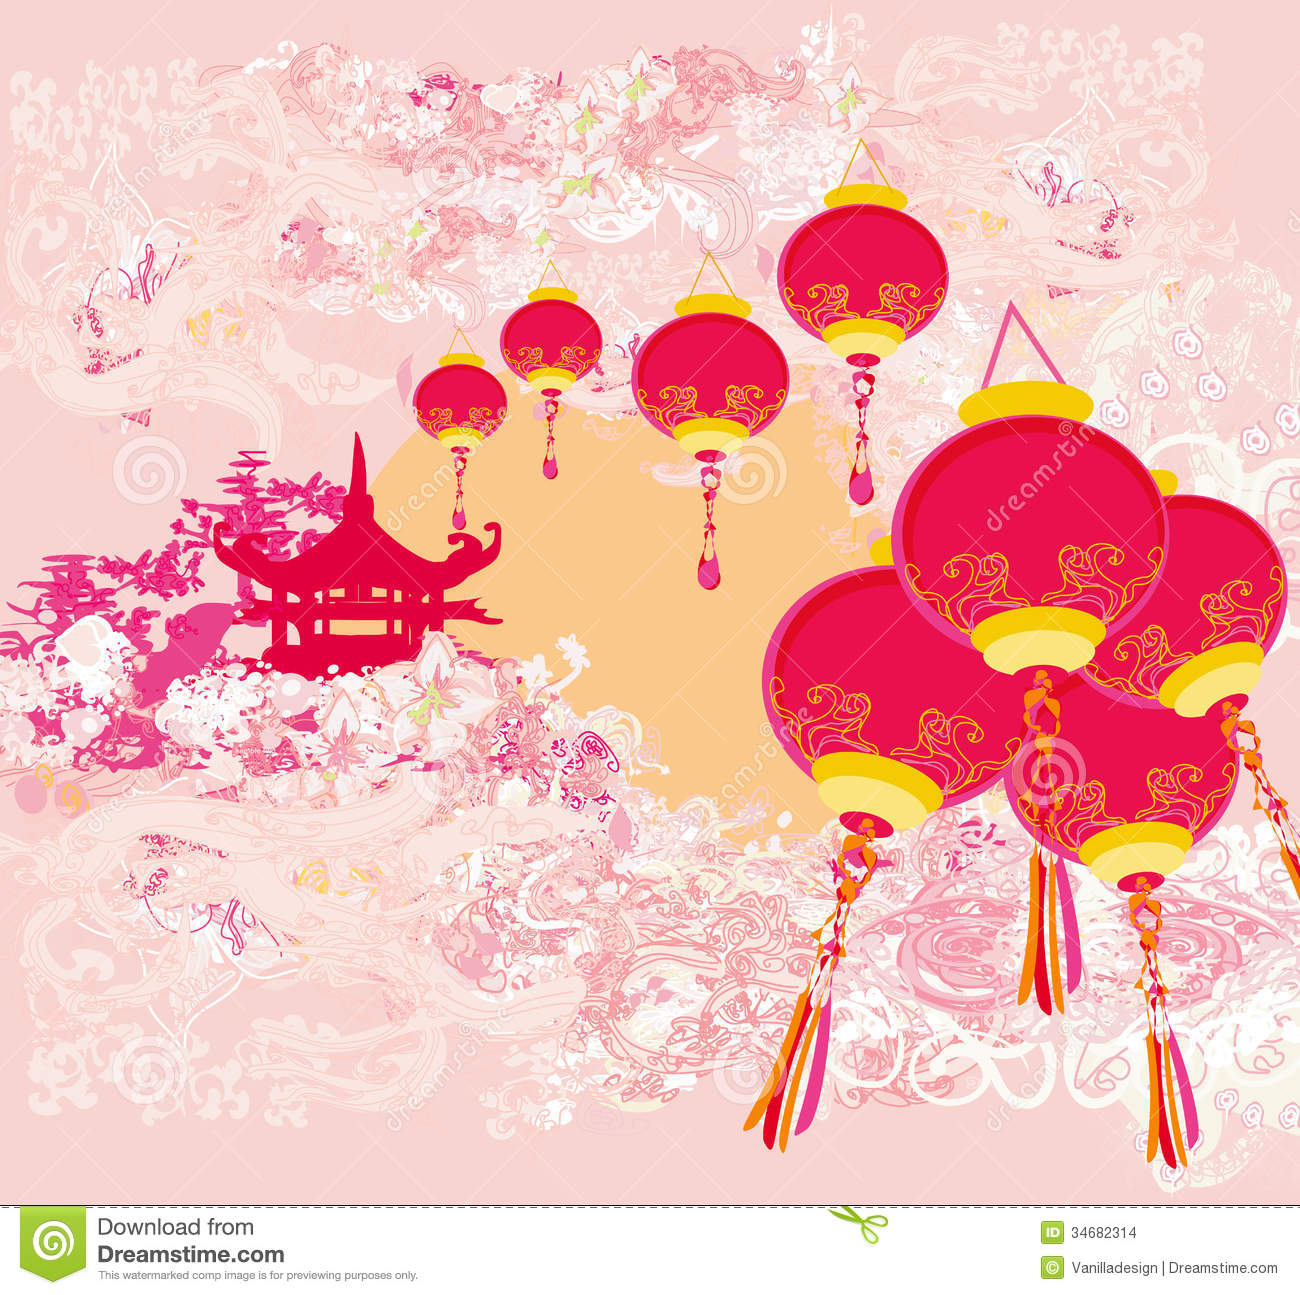 Chinese Calendar Illustration : Chinese new year card traditional lanterns and asian